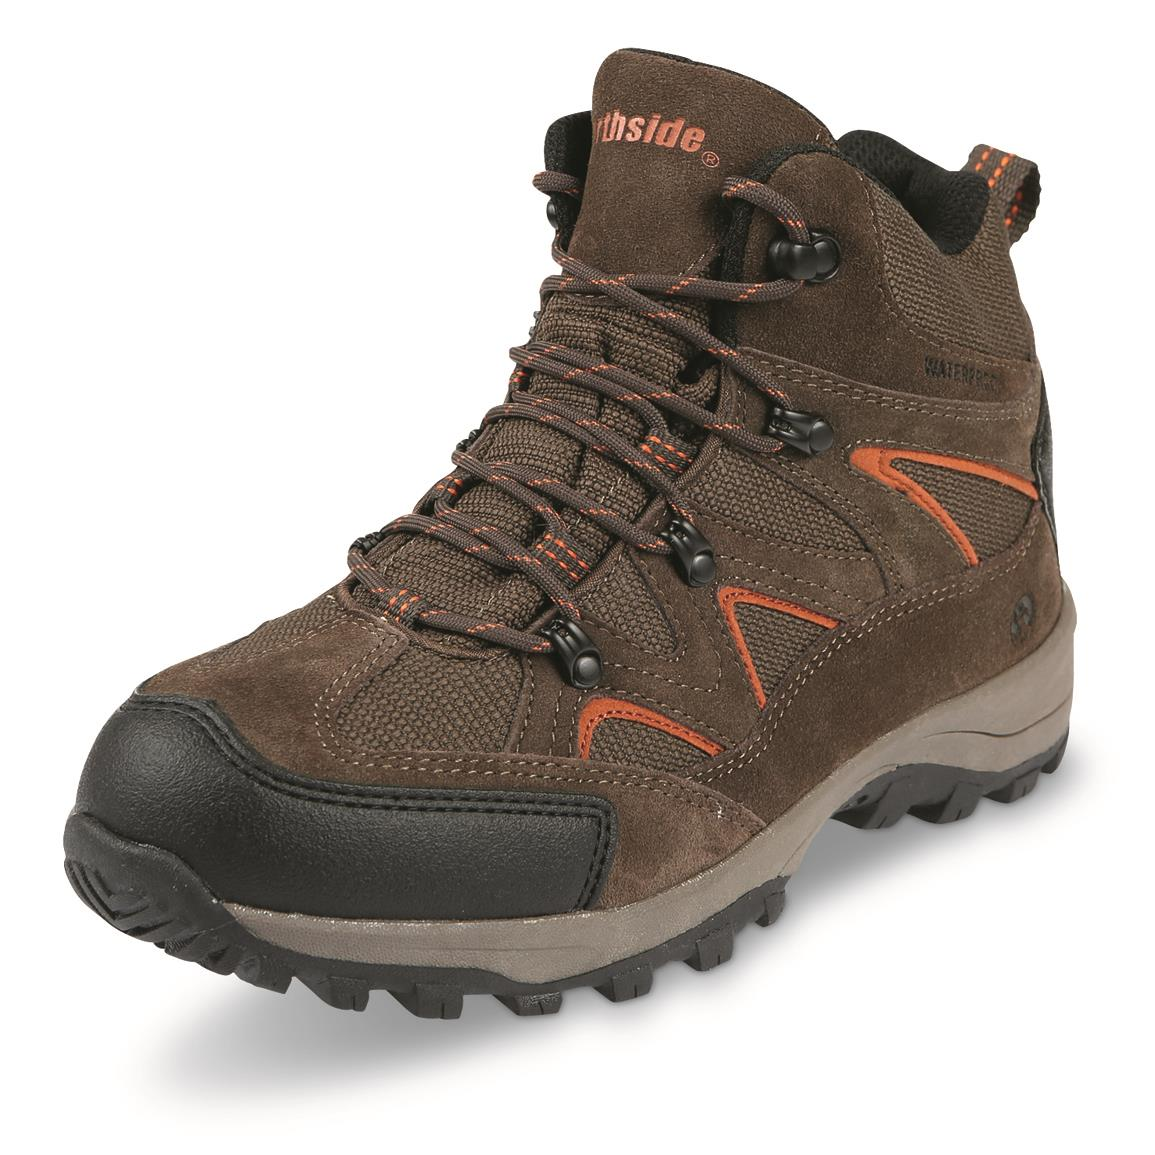 Northside Men's Snohomish Waterproof Mid Hiking Boots, Bark